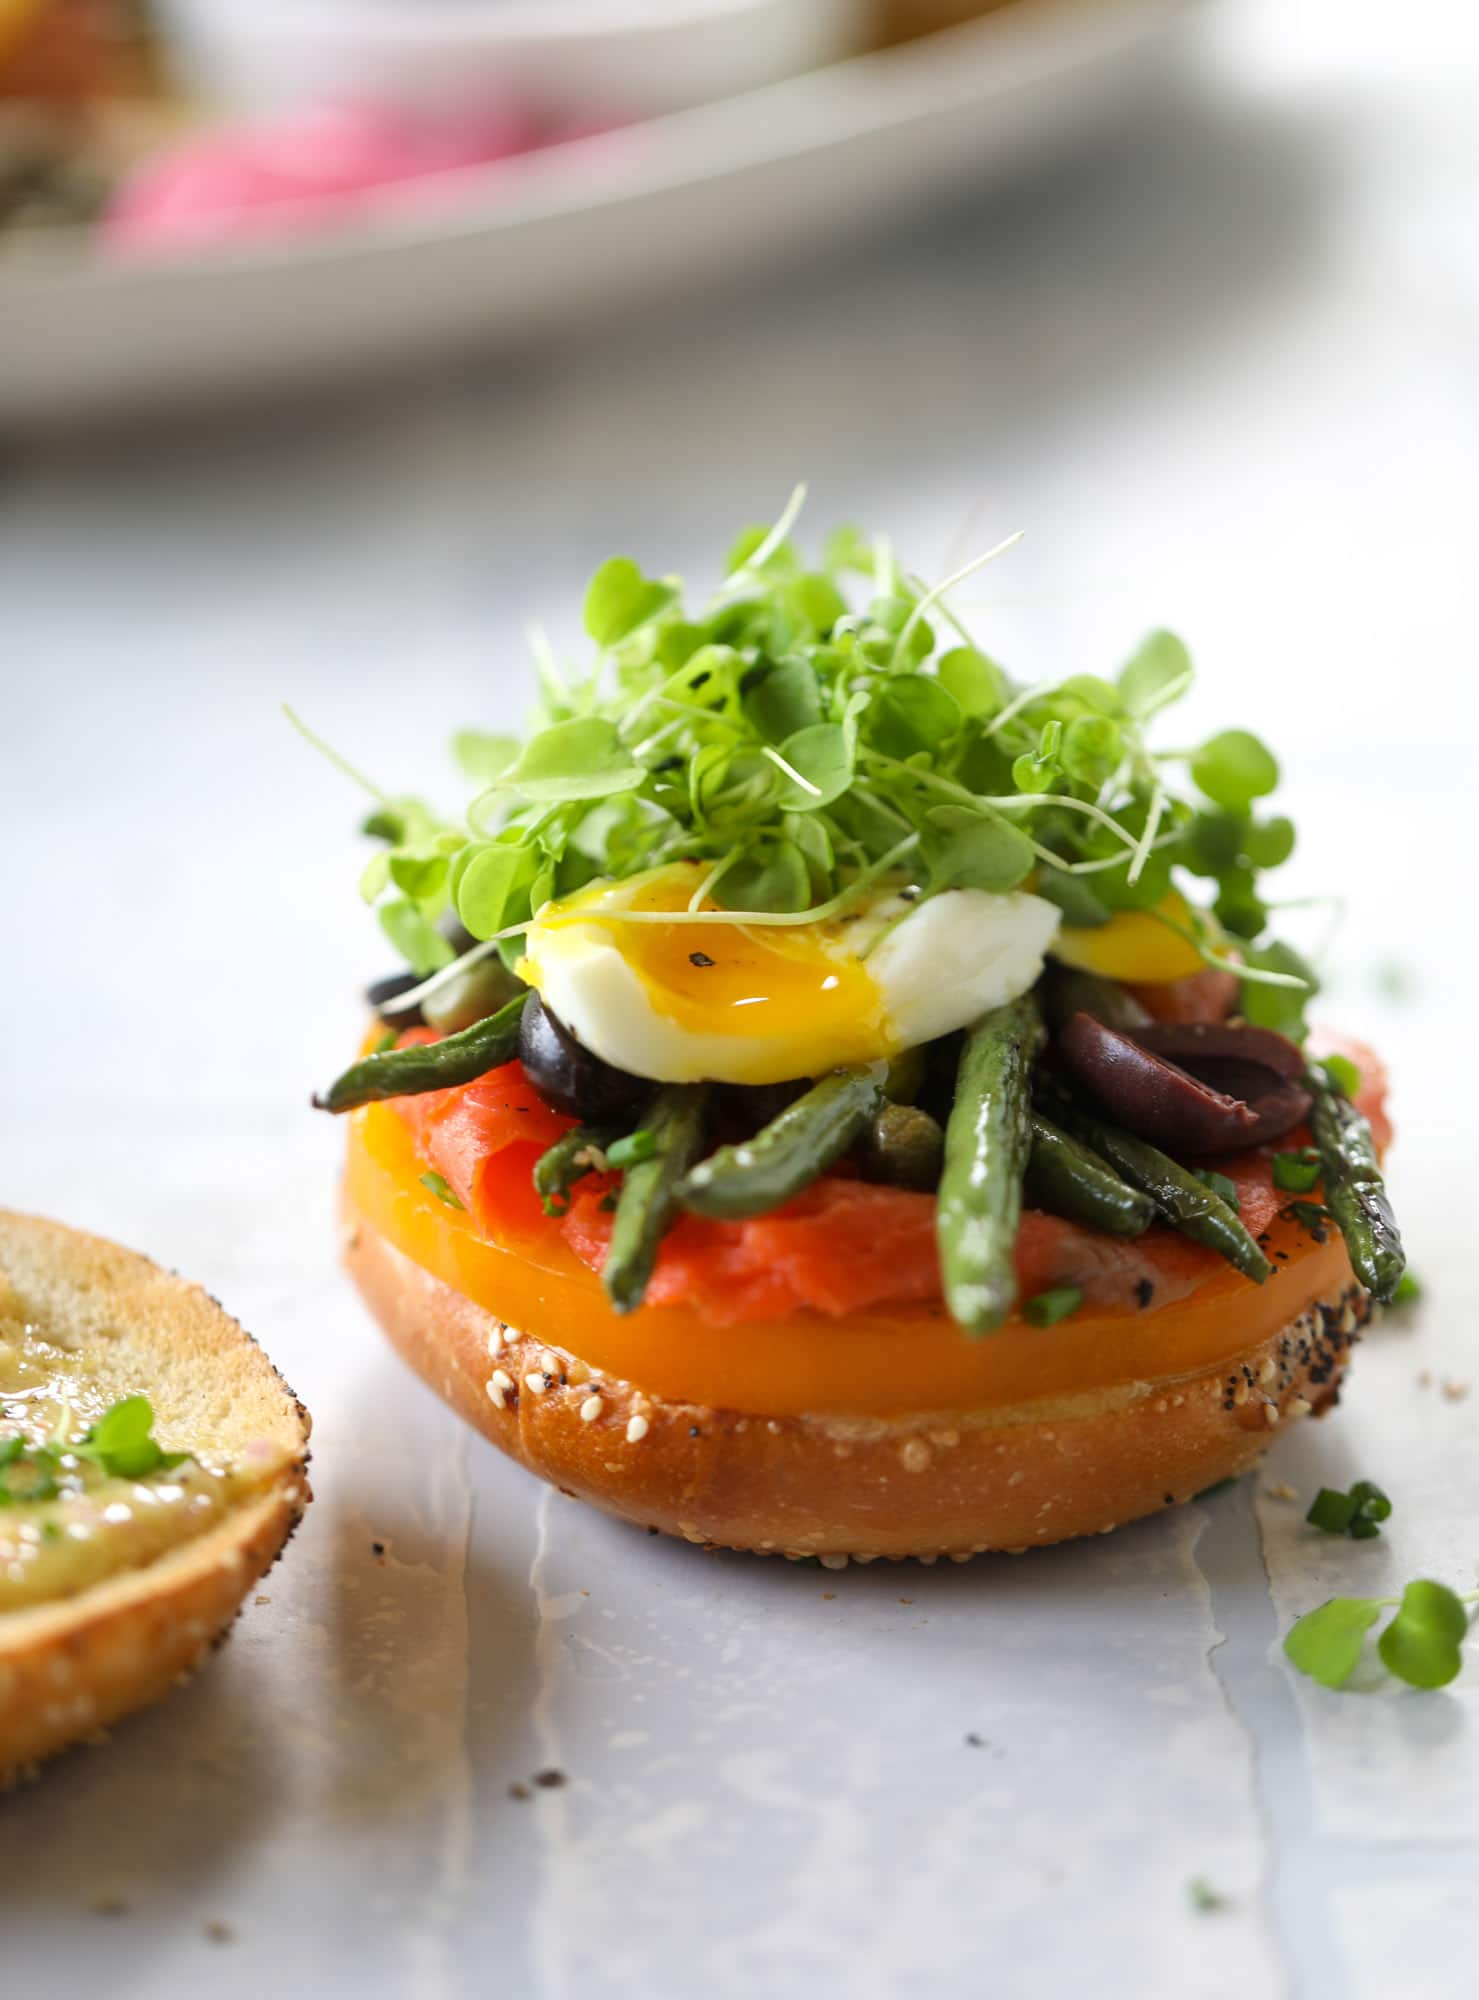 These nicoise bagels are a spin on my favorite salad! Loaded with smoked salmon, blistered green beans and tons of goodness. They are delish!